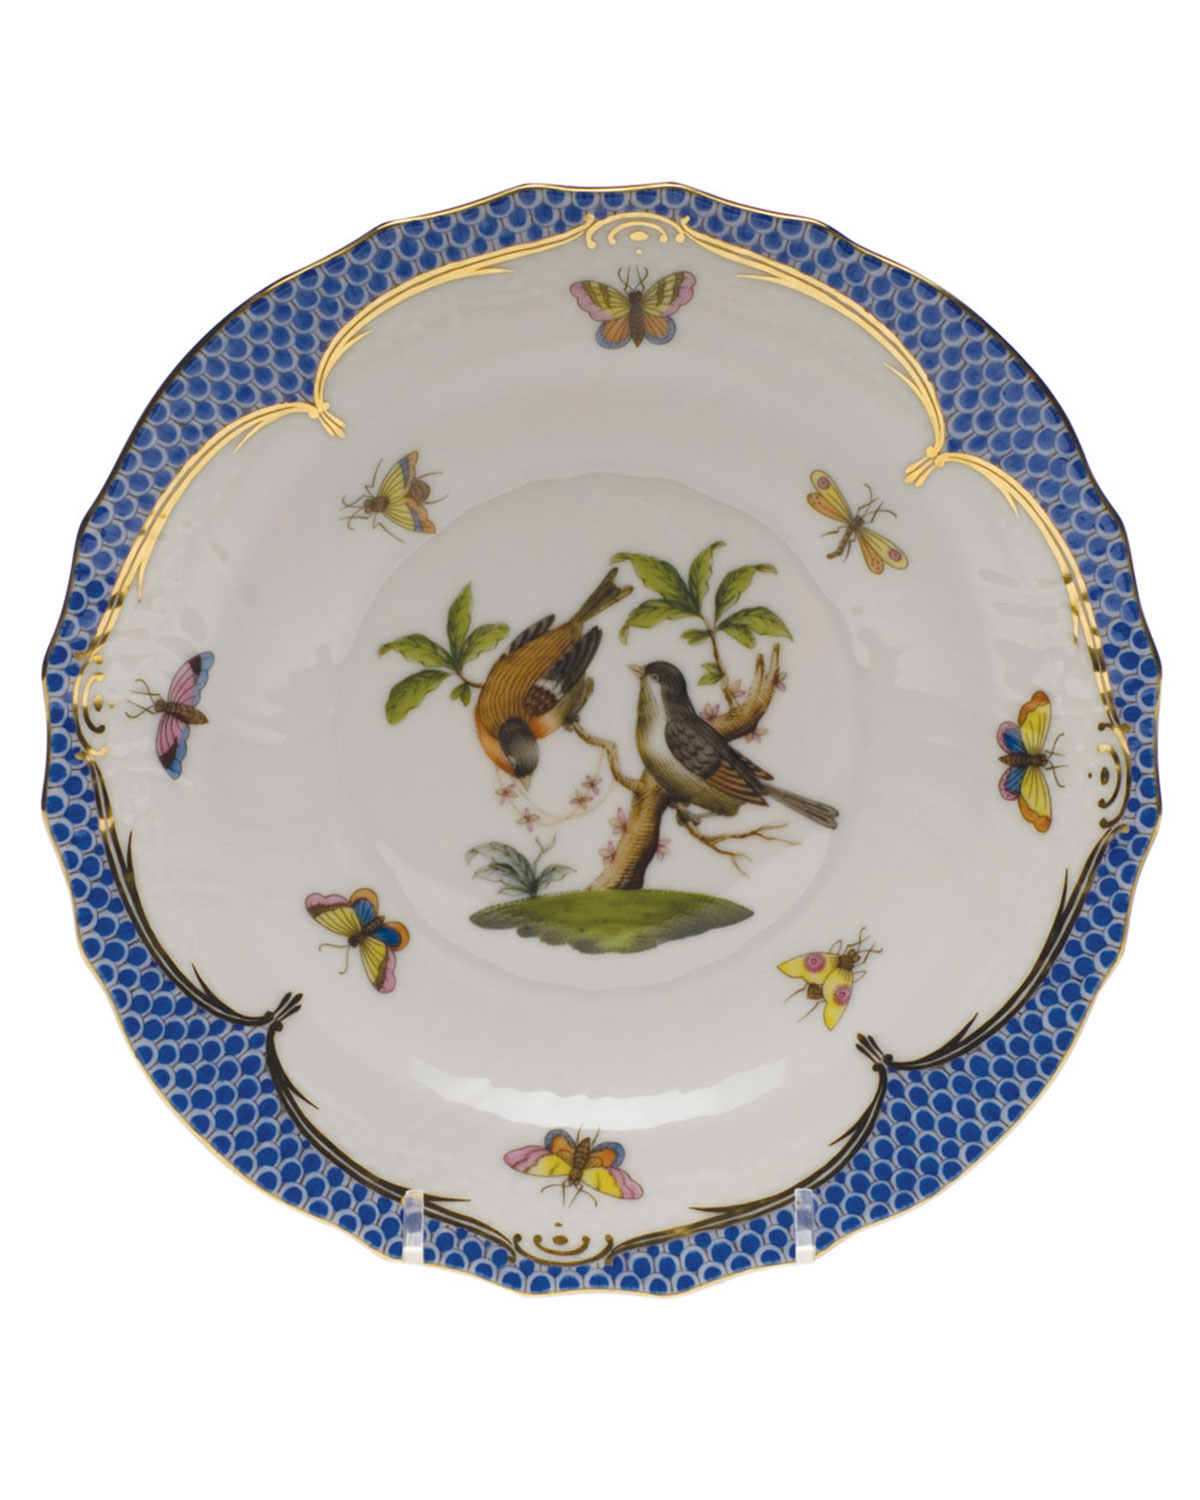 Herend Rothschild Blue Motif 12 Salad Plate